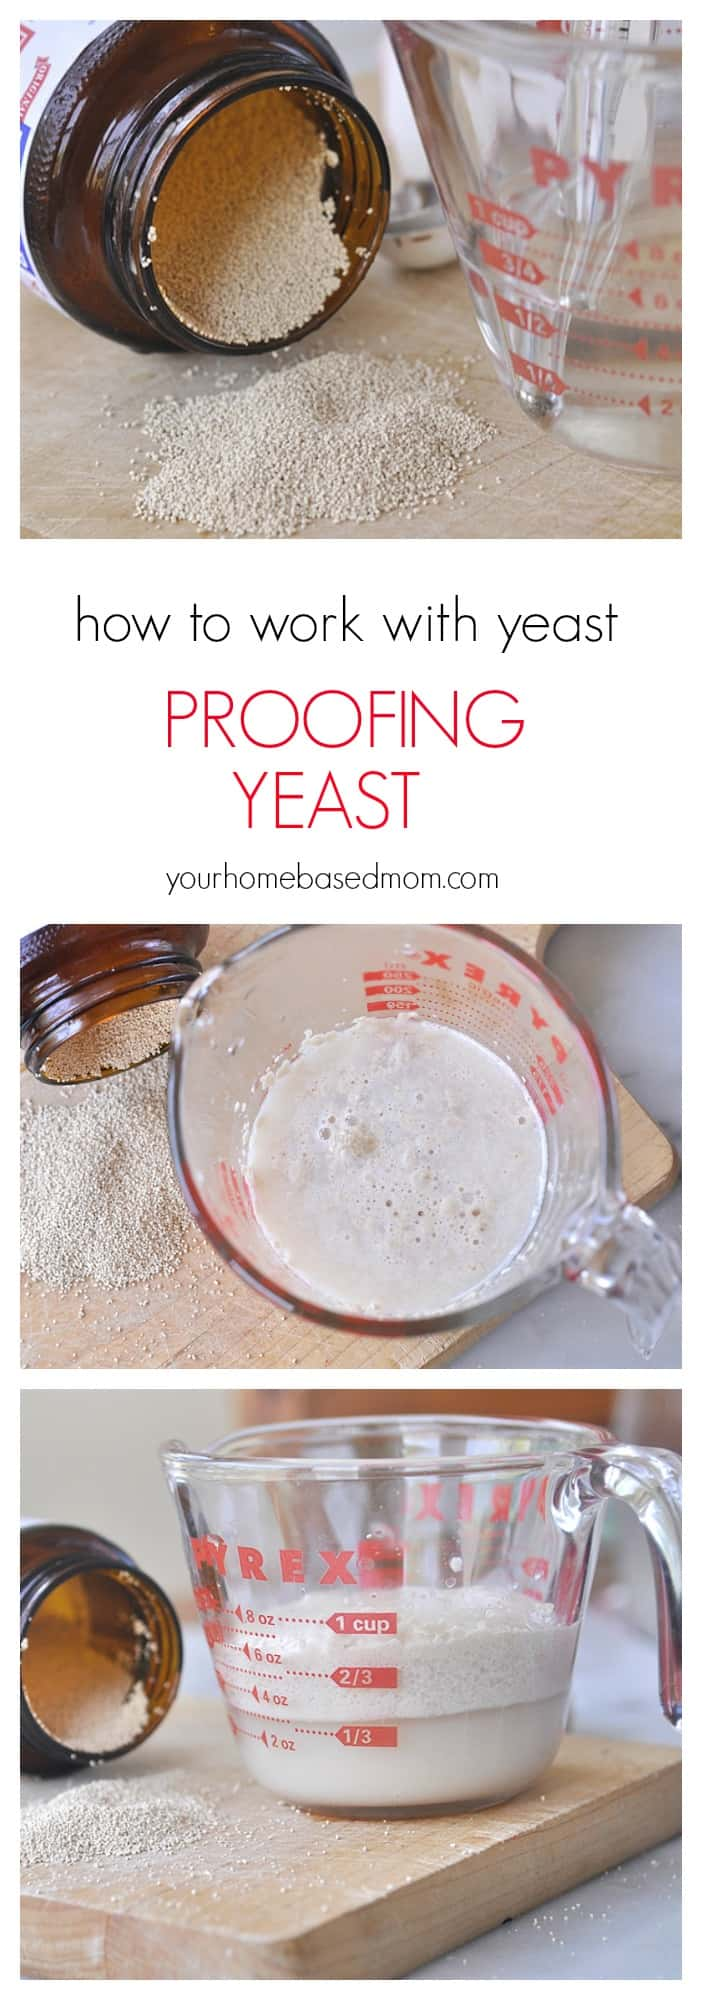 How to Proof Yeast - step by step guide to proofing yeast